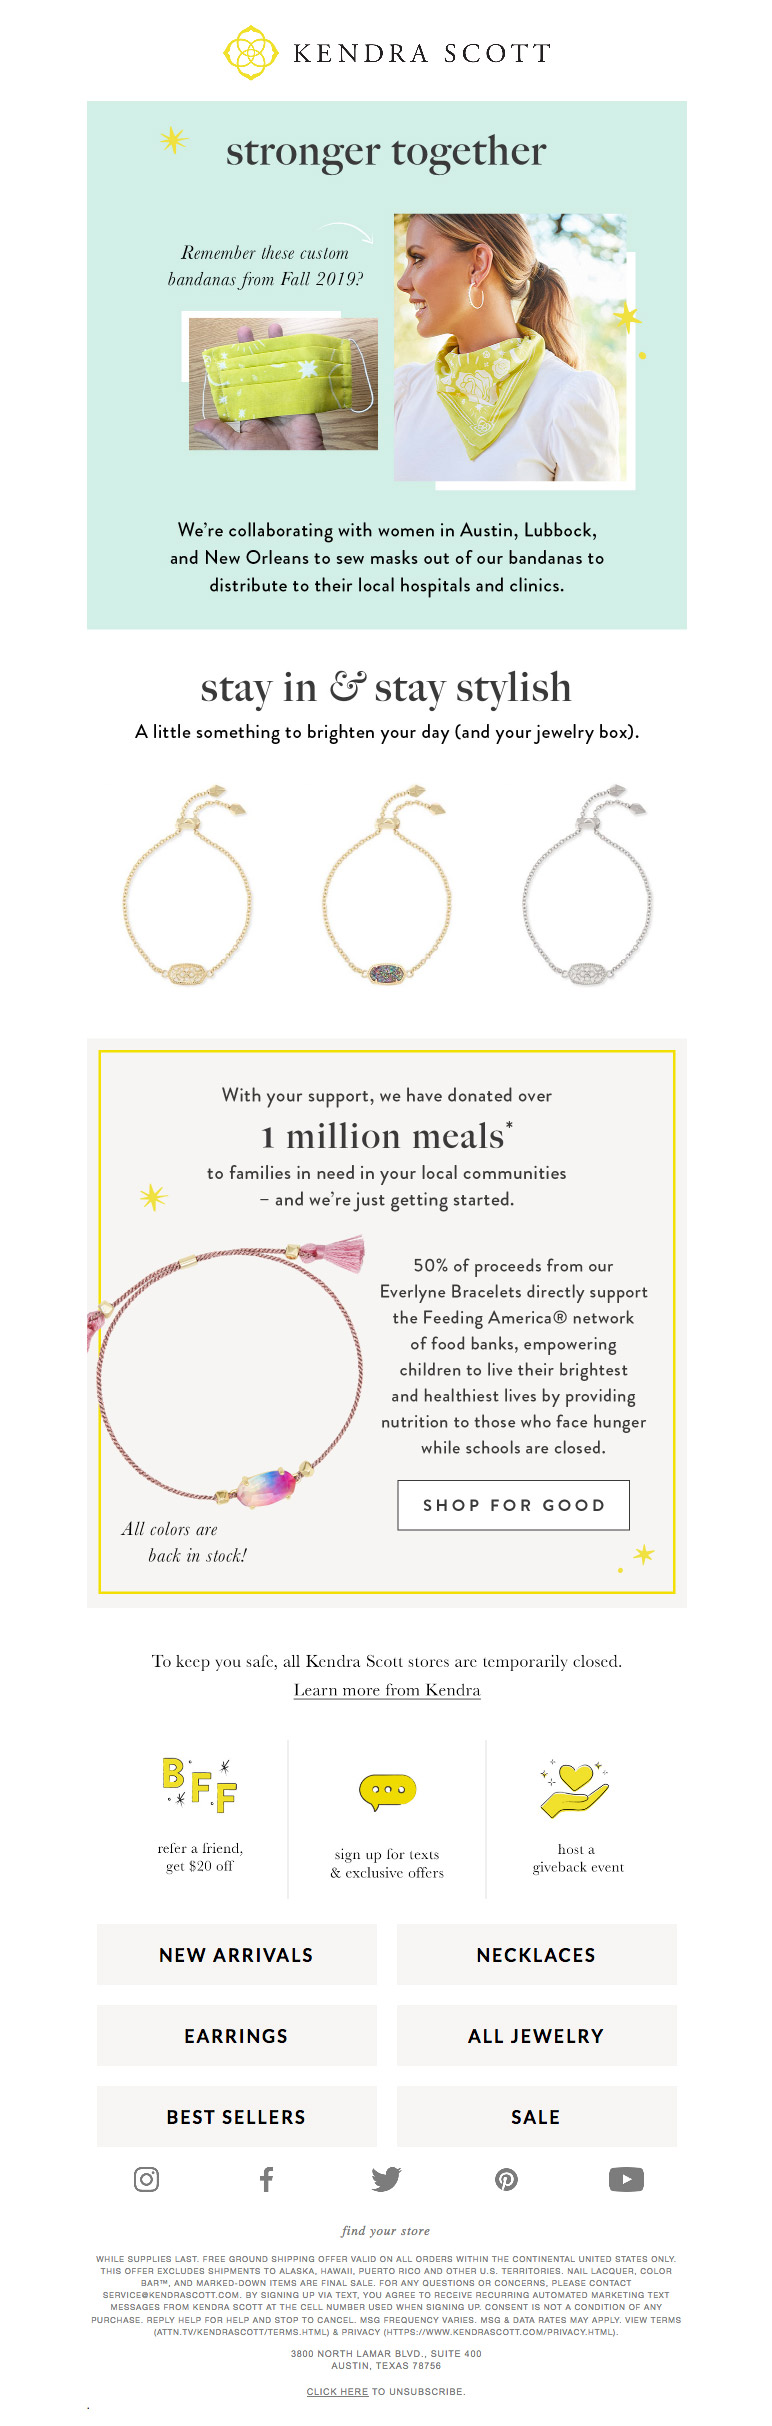 Kendra Scott used a new email layout to communicate important coronavirus-related information.